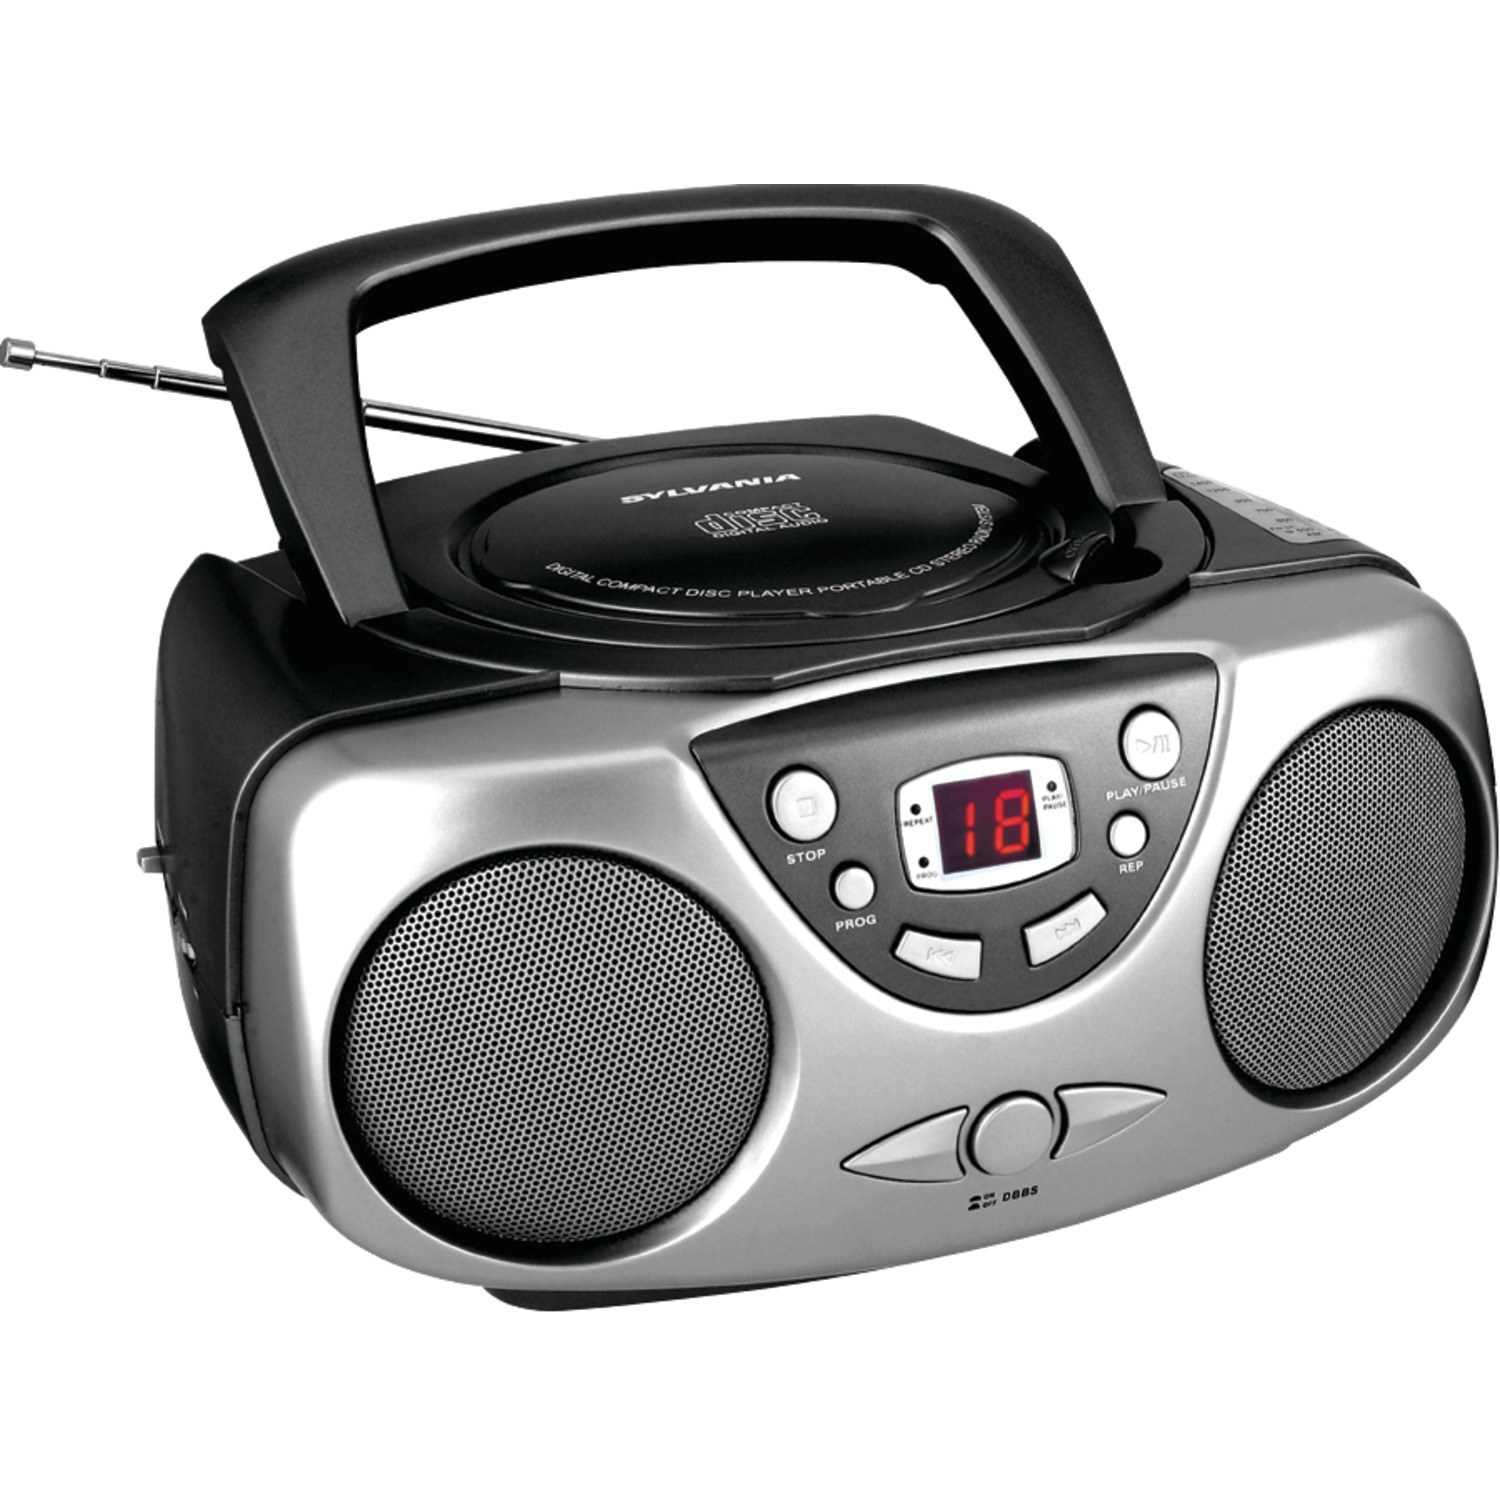 Sylvania Portable Cd Boombox And Am/fm Radio & Upg Super Heavy-duty Battery Box